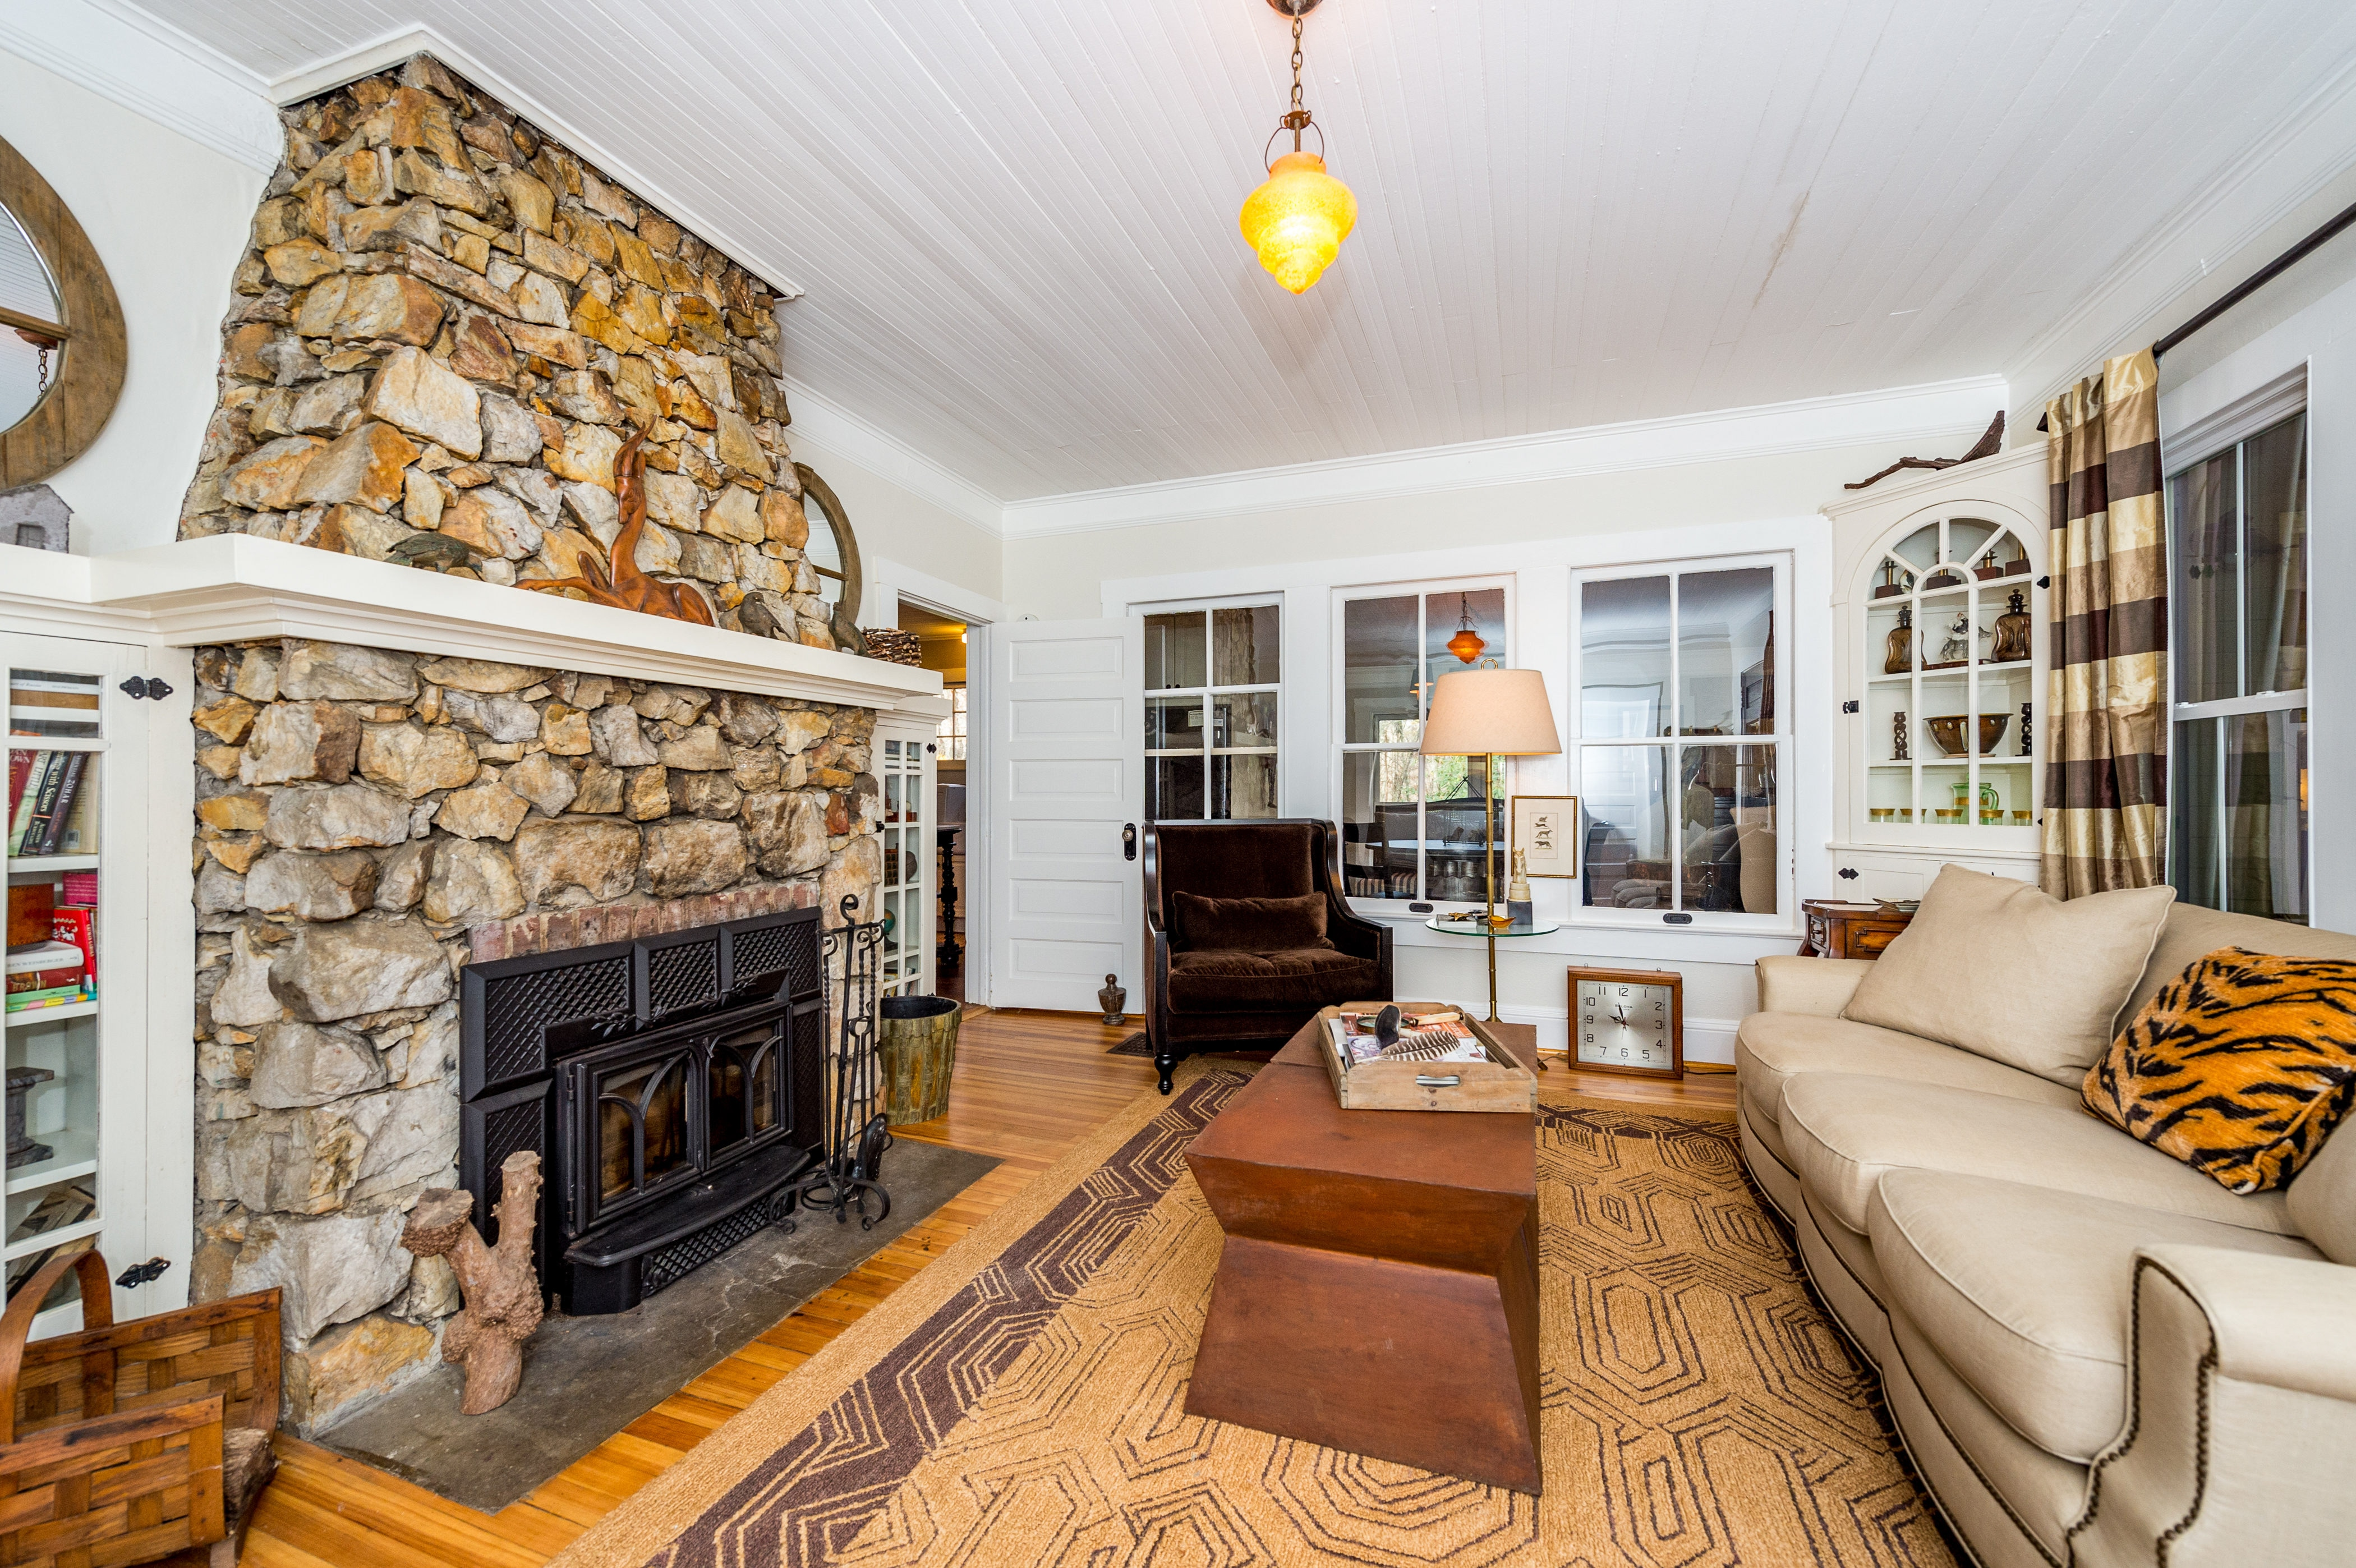 Stone fireplace in the main home's living room, plus comfy seating for 4.